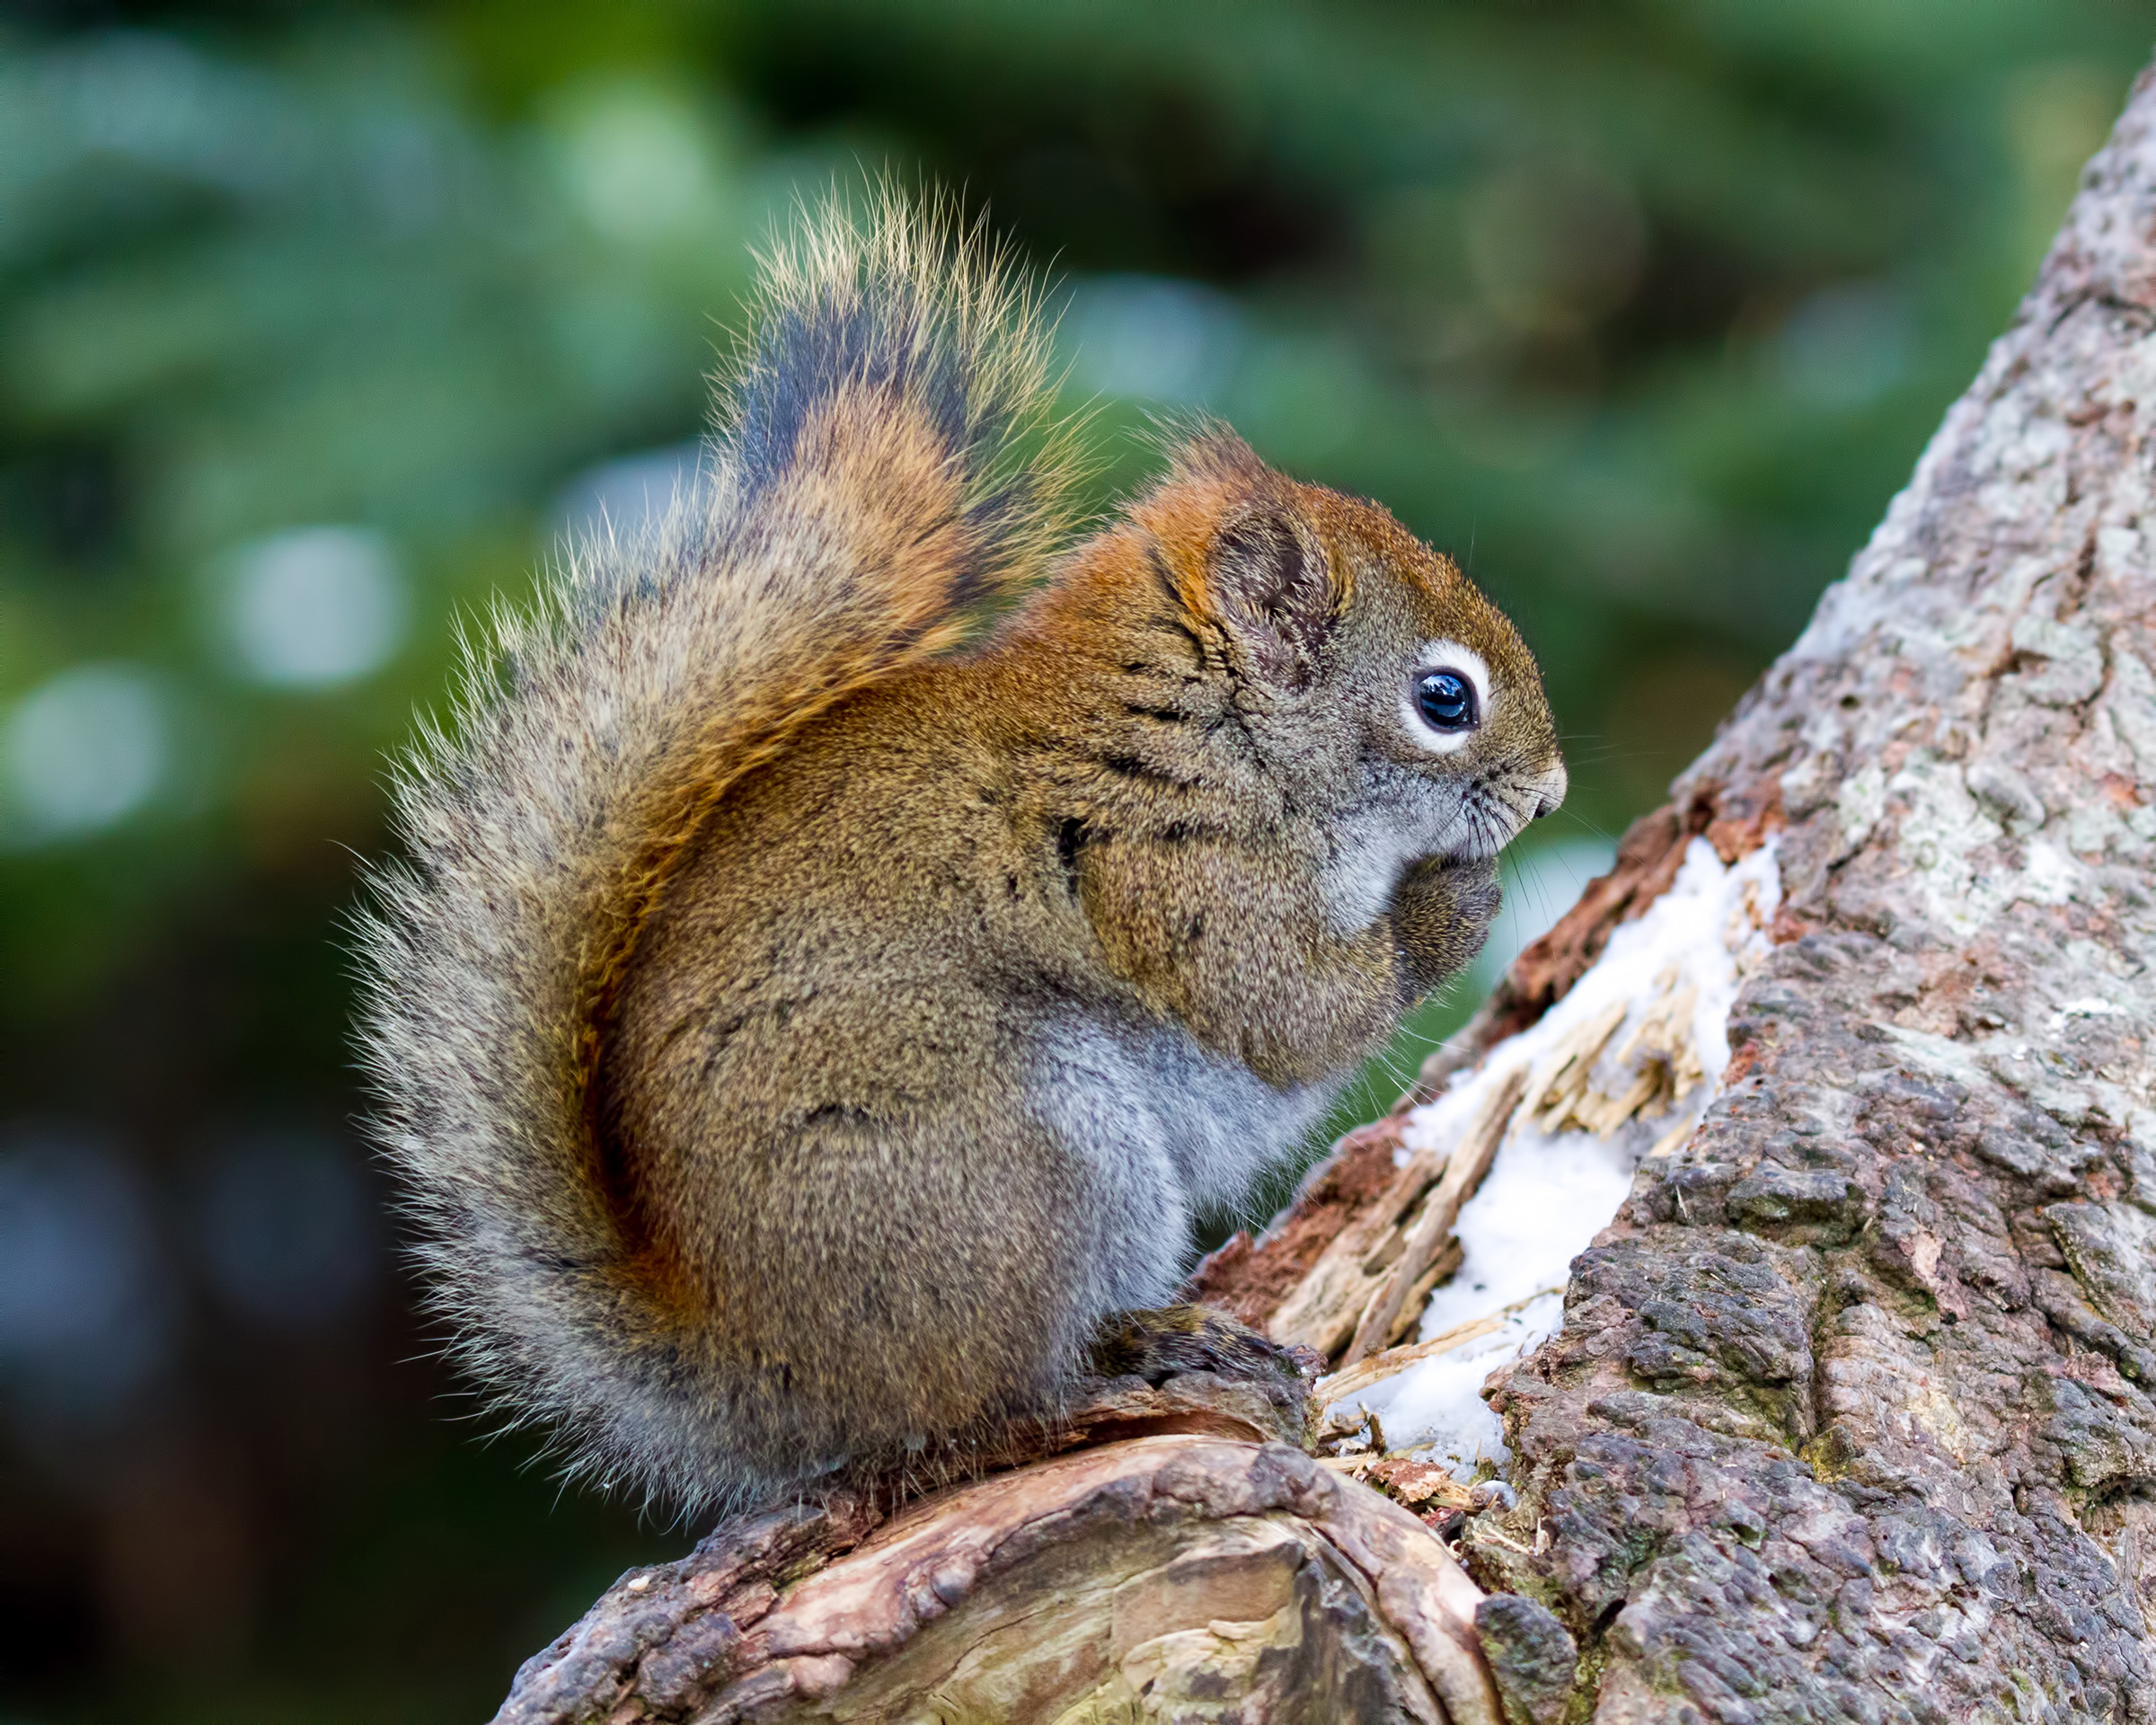 Squirrel, Adorable, Search, Park, Paw, HQ Photo